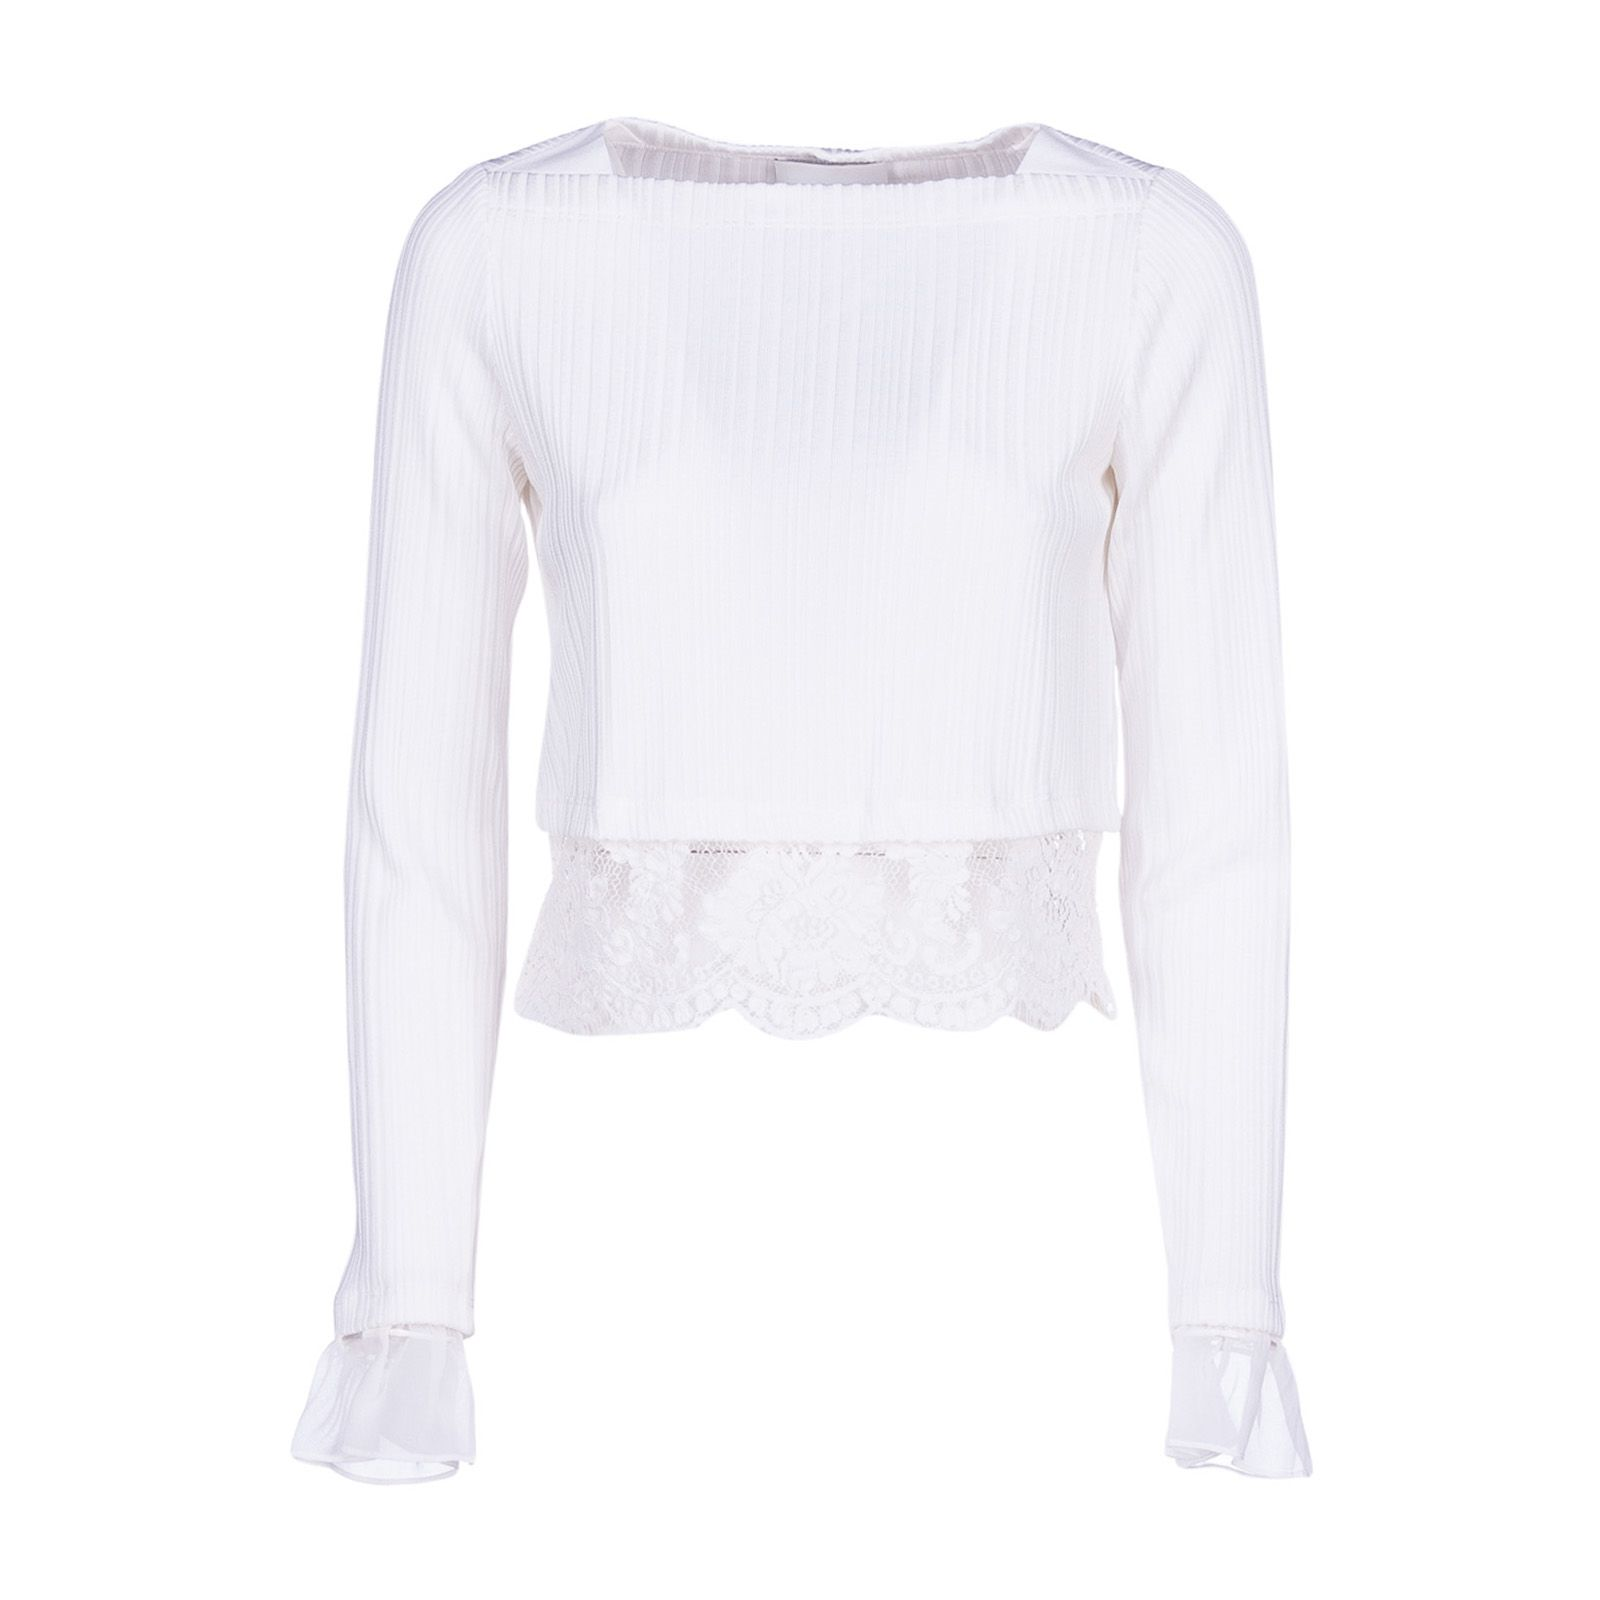 3.1 Phillip Lim Lace Embroidered Crop Top